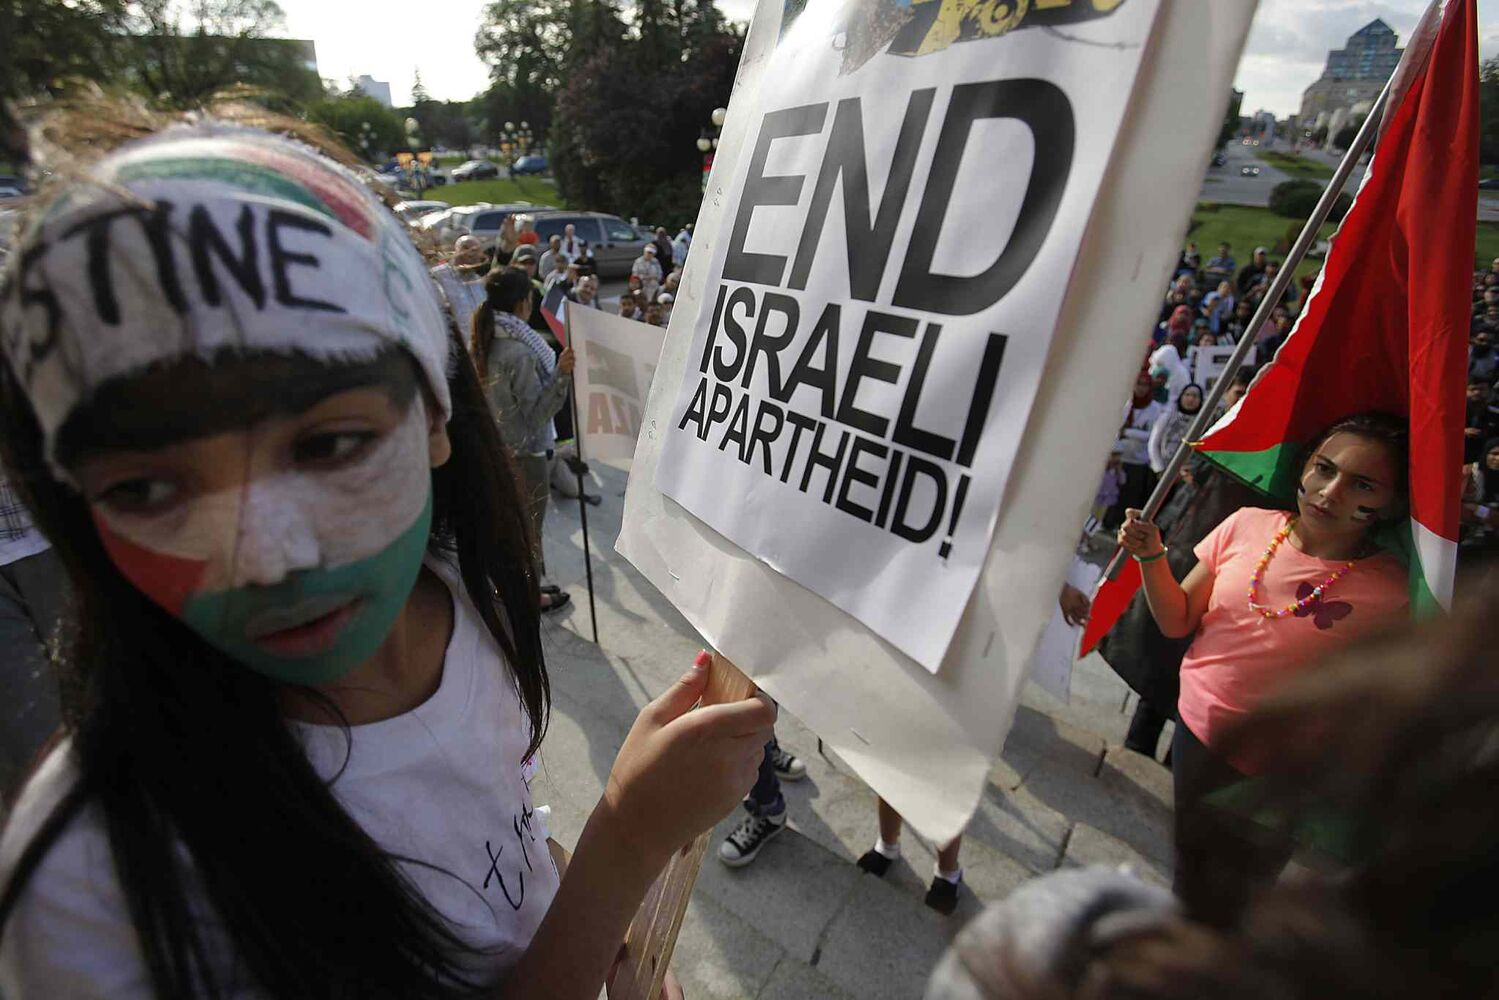 Palestinian supporters hold a peaceful rally at the Manitoba Legislature. (John Woods / Winnipeg Free Press)